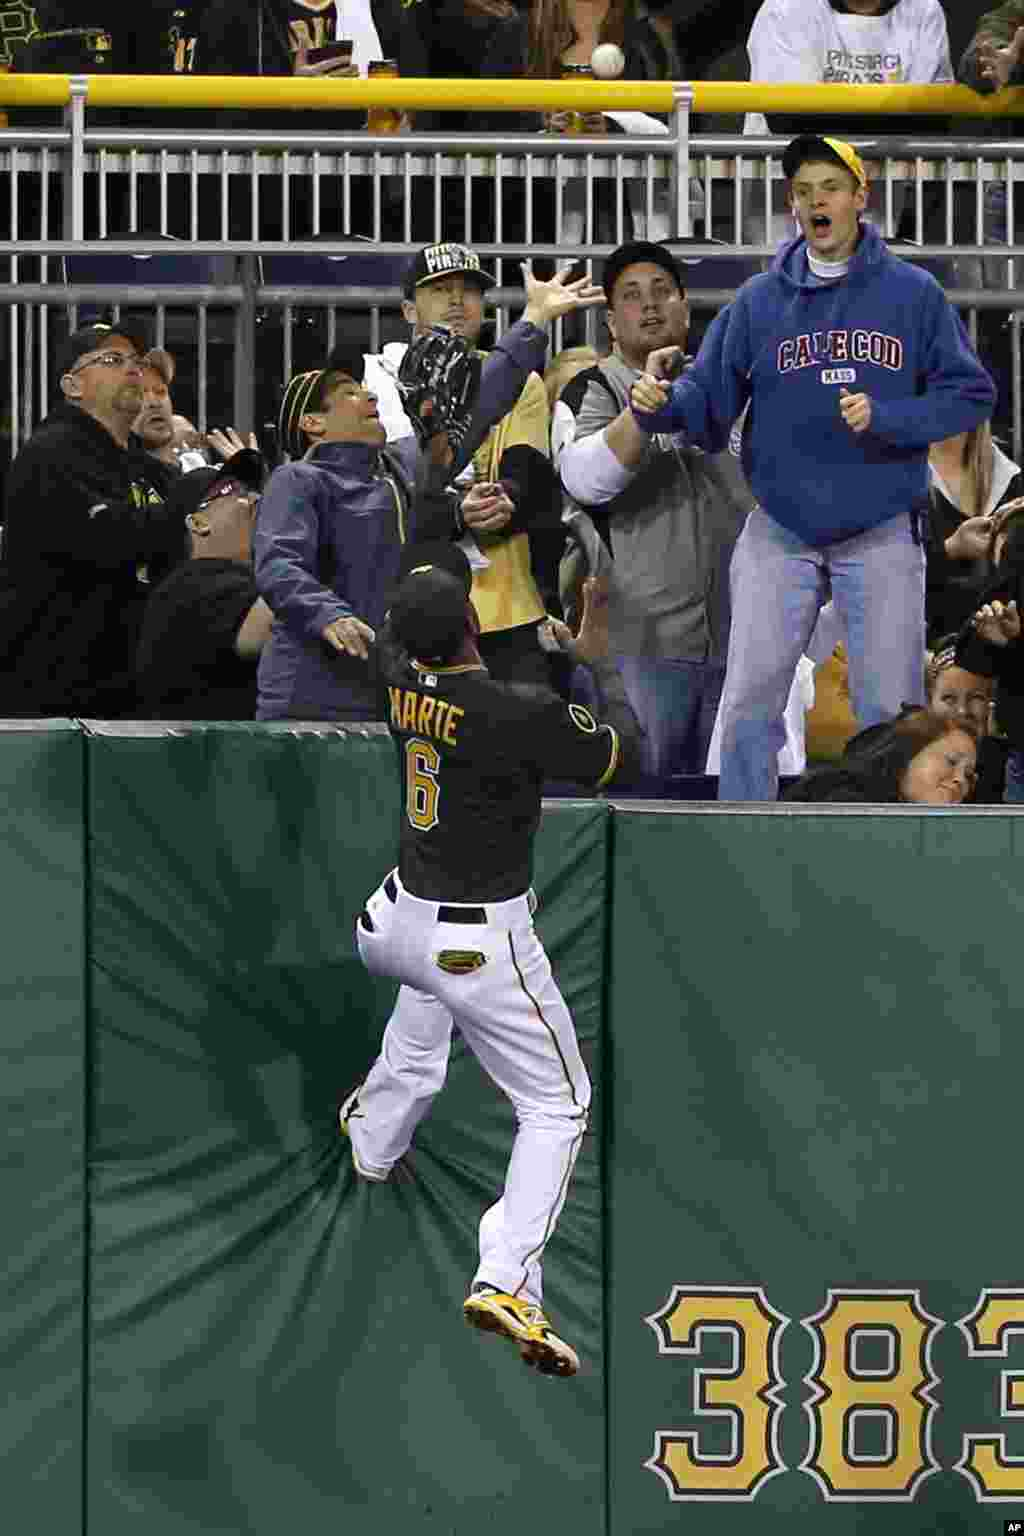 Pittsburgh Pirates left fielder Starling Marte (6) climbs the wall chasing the ball as fans reach for the home run ball hit by Toronto Blue Jays' Colby Rasmus in the fourth inning of a baseball game in Pittsburgh, Pennsylvania, USA, May 2, 2014.